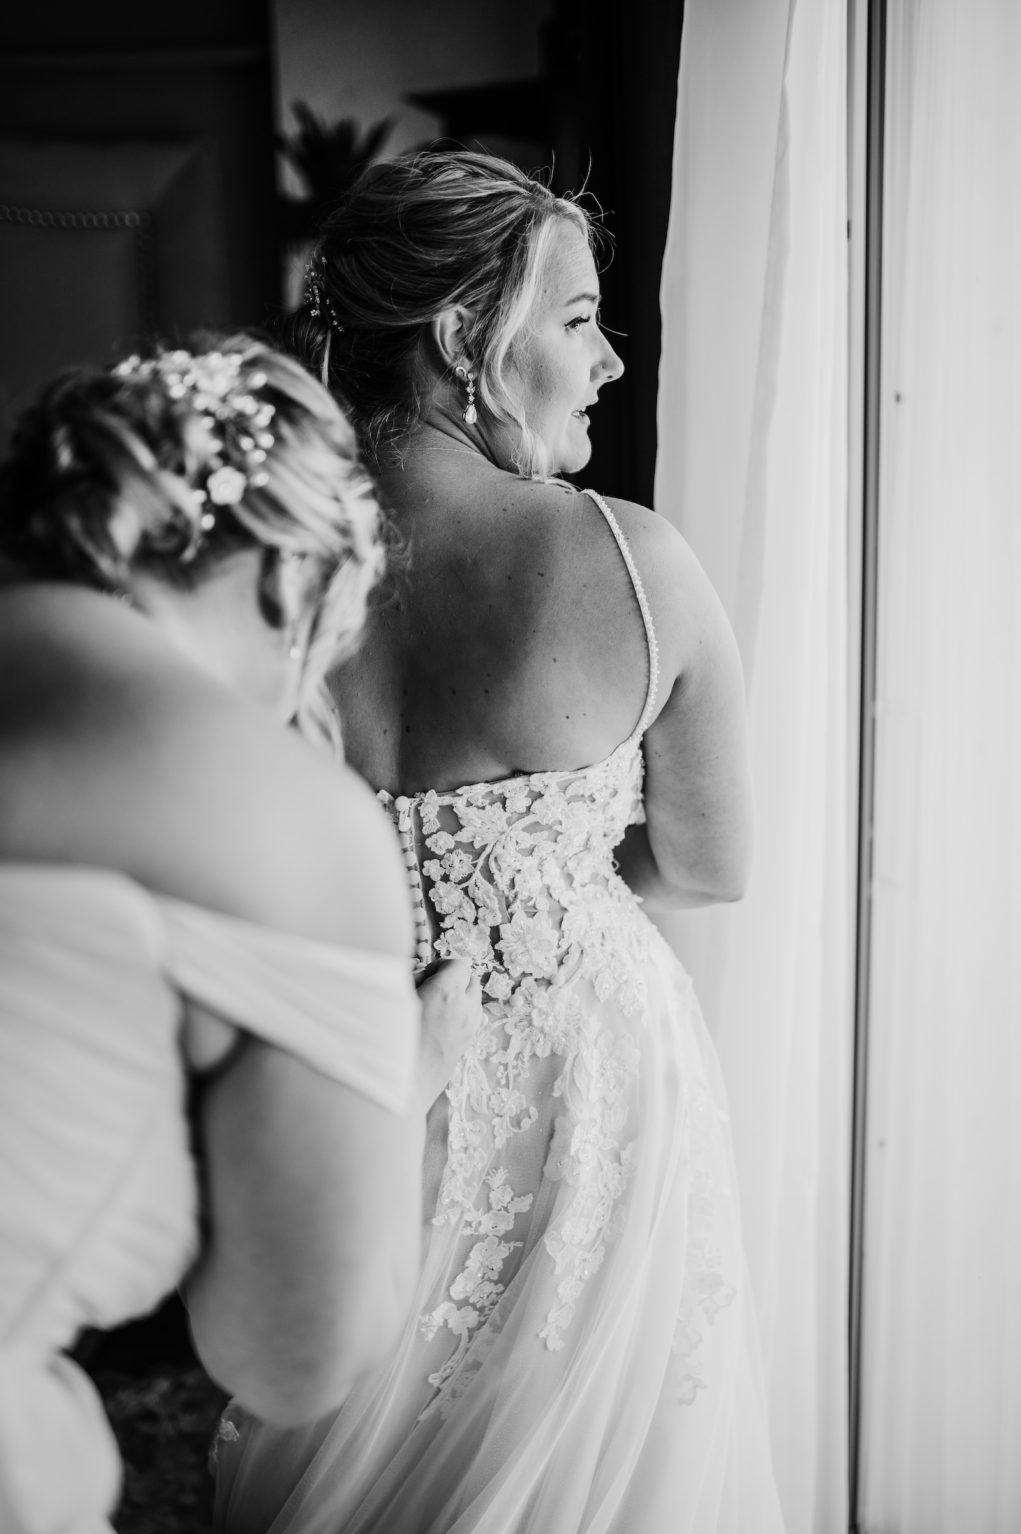 Bride Wedding Portrait | Getting Ready for the Wedding Day Black and White Photo